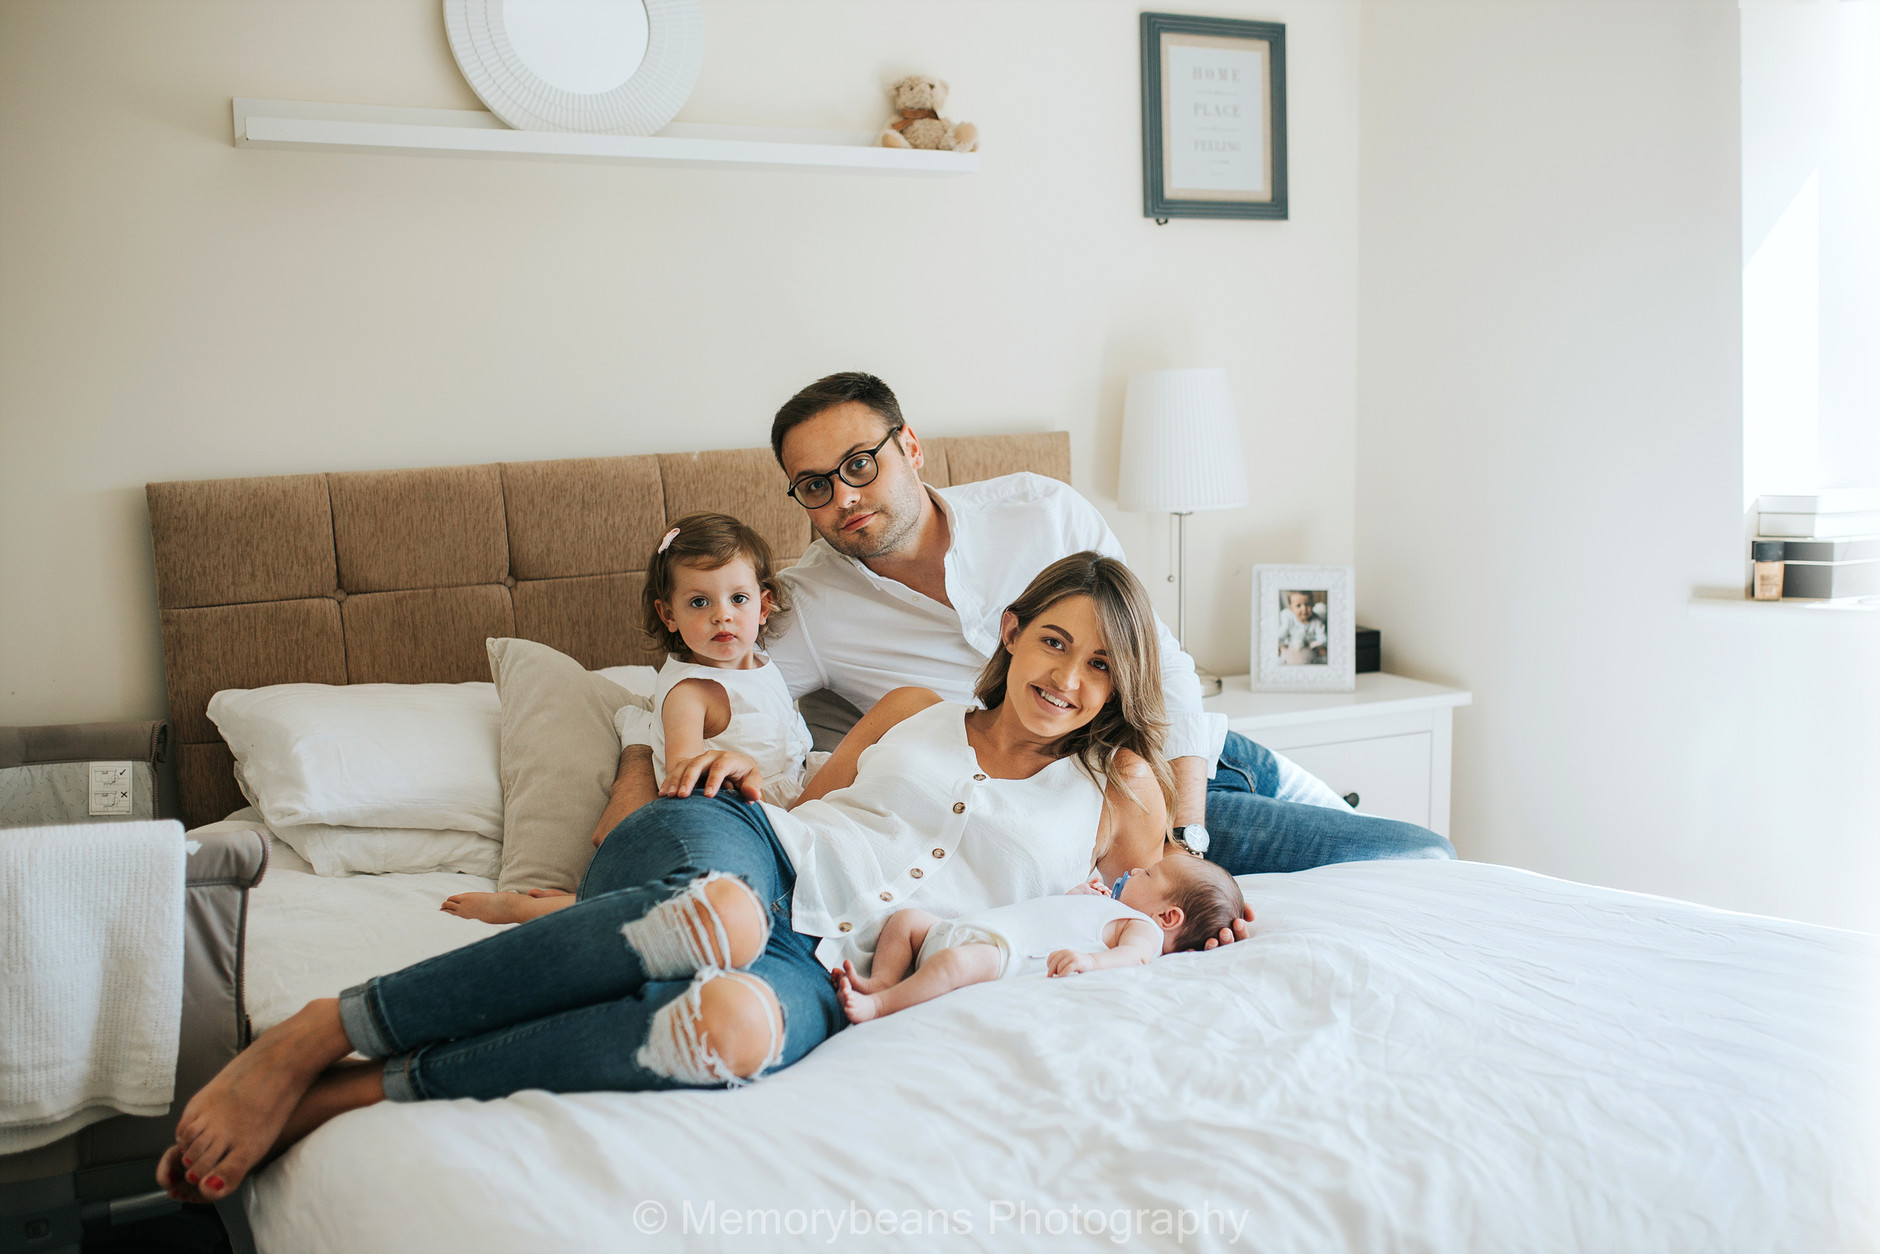 Whole family portrait with infant baby and sibling on the parents bed